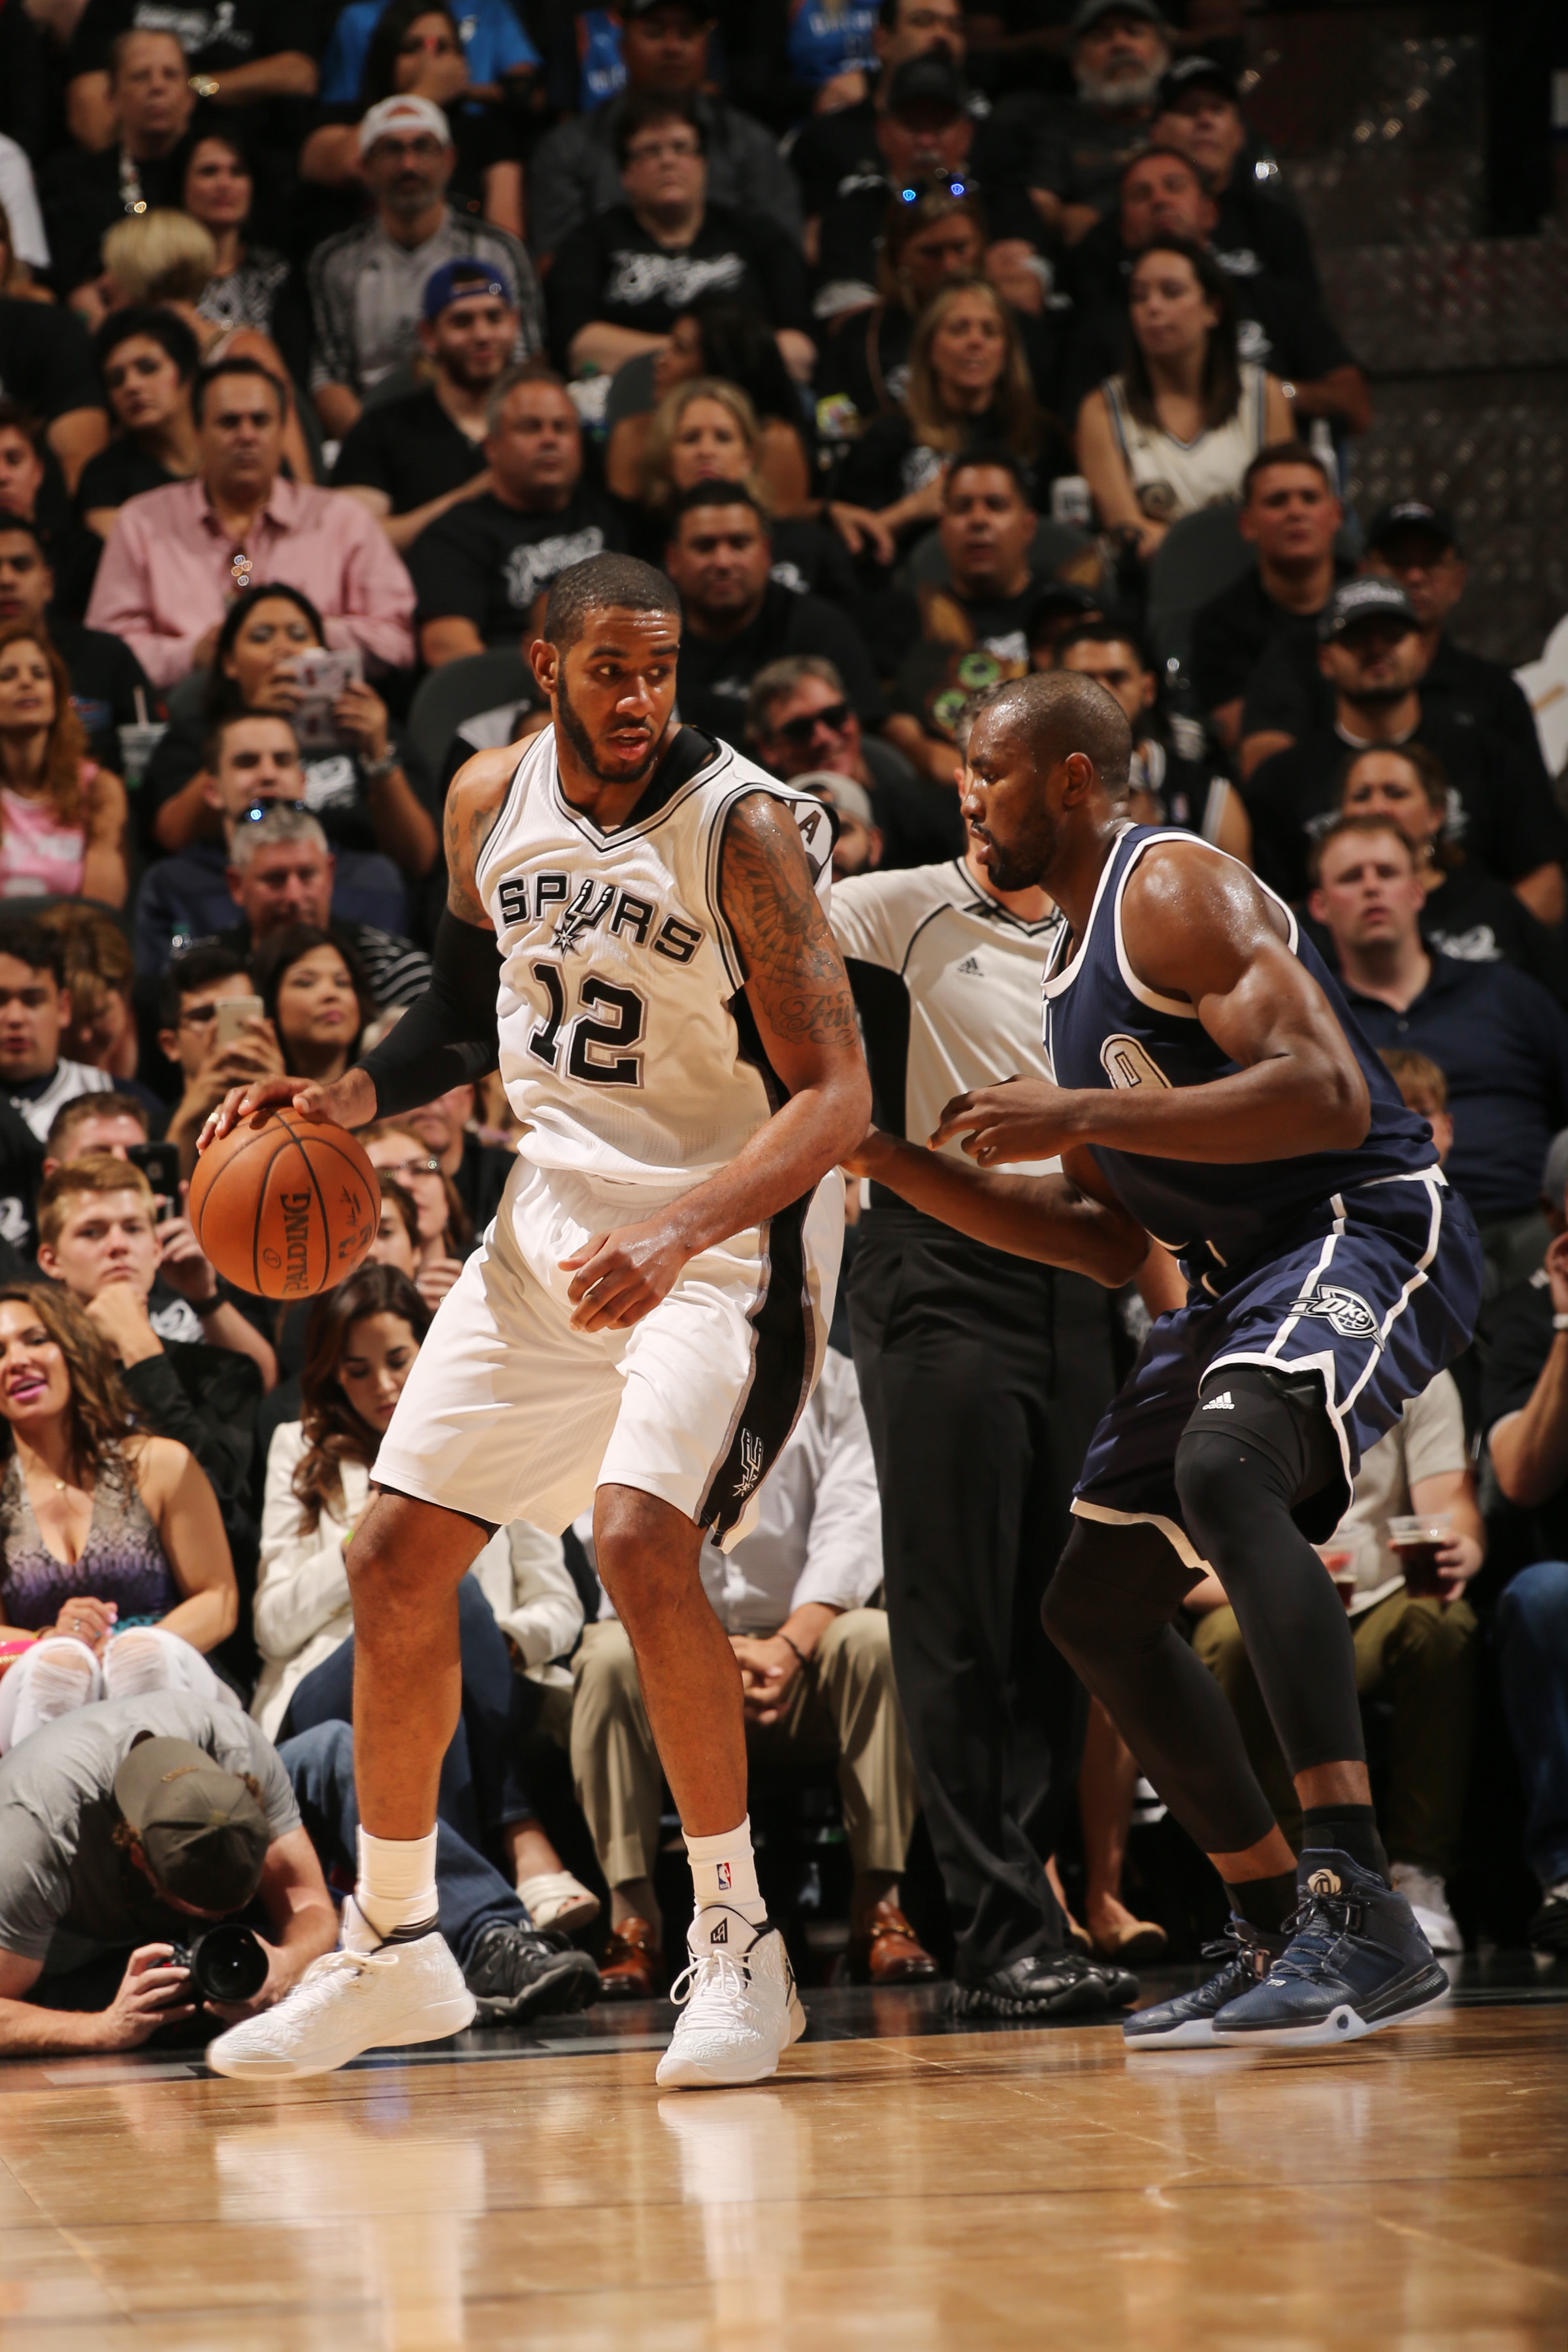 SAN ANTONIO, TX - APRIL 30: LaMarcus Aldridge #12 of the San Antonio Spurs handles the ball against the Oklahoma City Thunder in Game One of Western Conference Semifinals of the 2016 NBA Playoffs on April 30, 2016 at the AT&T Center in San Antonio, Texas